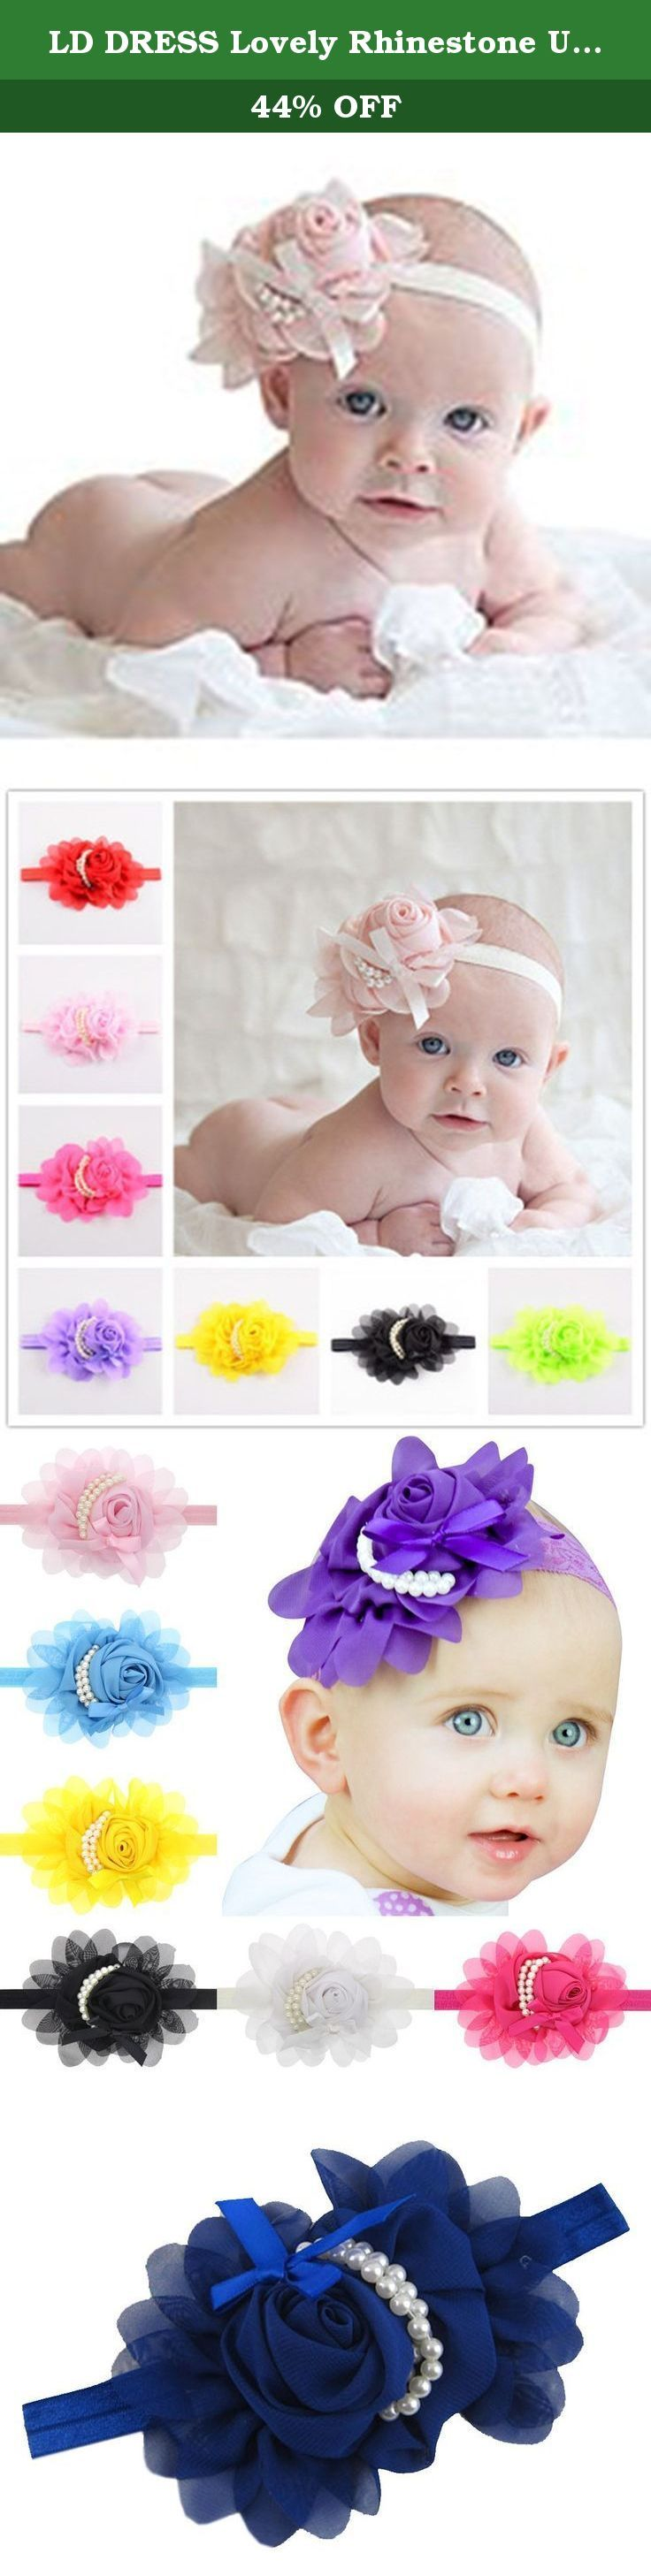 LD DRESS Lovely Rhinestone Unusual Angel Girls Baby Pearl Flowers Hairband Headbands (Navy blue). This is chiffon headband making, comfortable, simple yet elegant, made with elastic to bring your baby in a very pleasant surprise!.